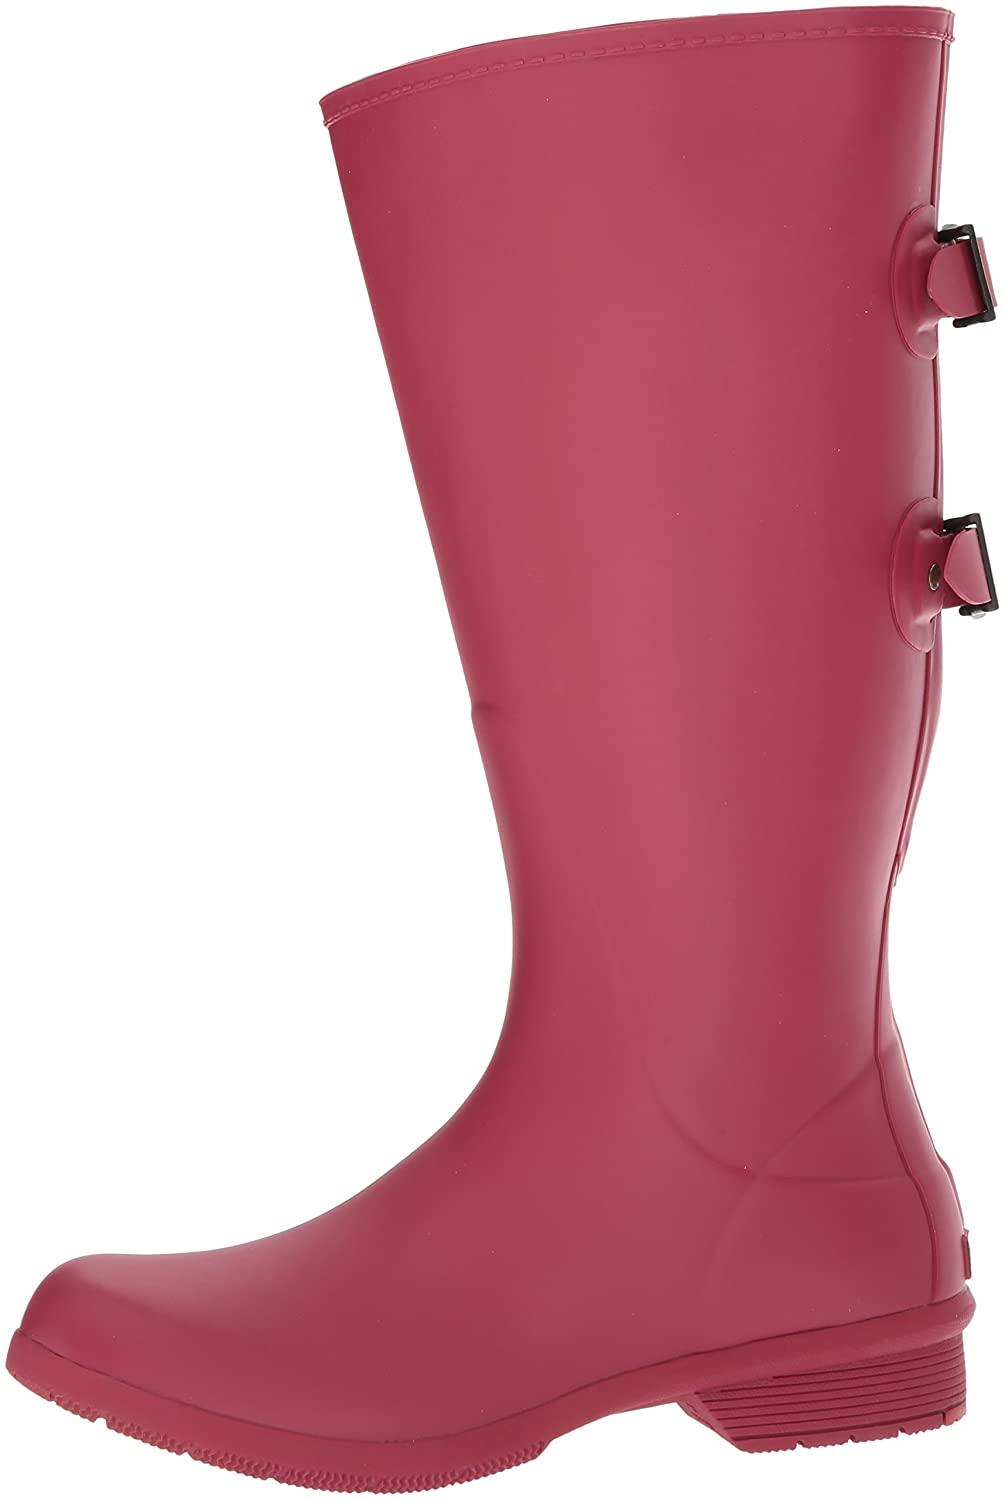 Chooka Women's Wide Calf Memory Foam Rain Boot B01N1RBGGN 11 B(M) US|Raspberry